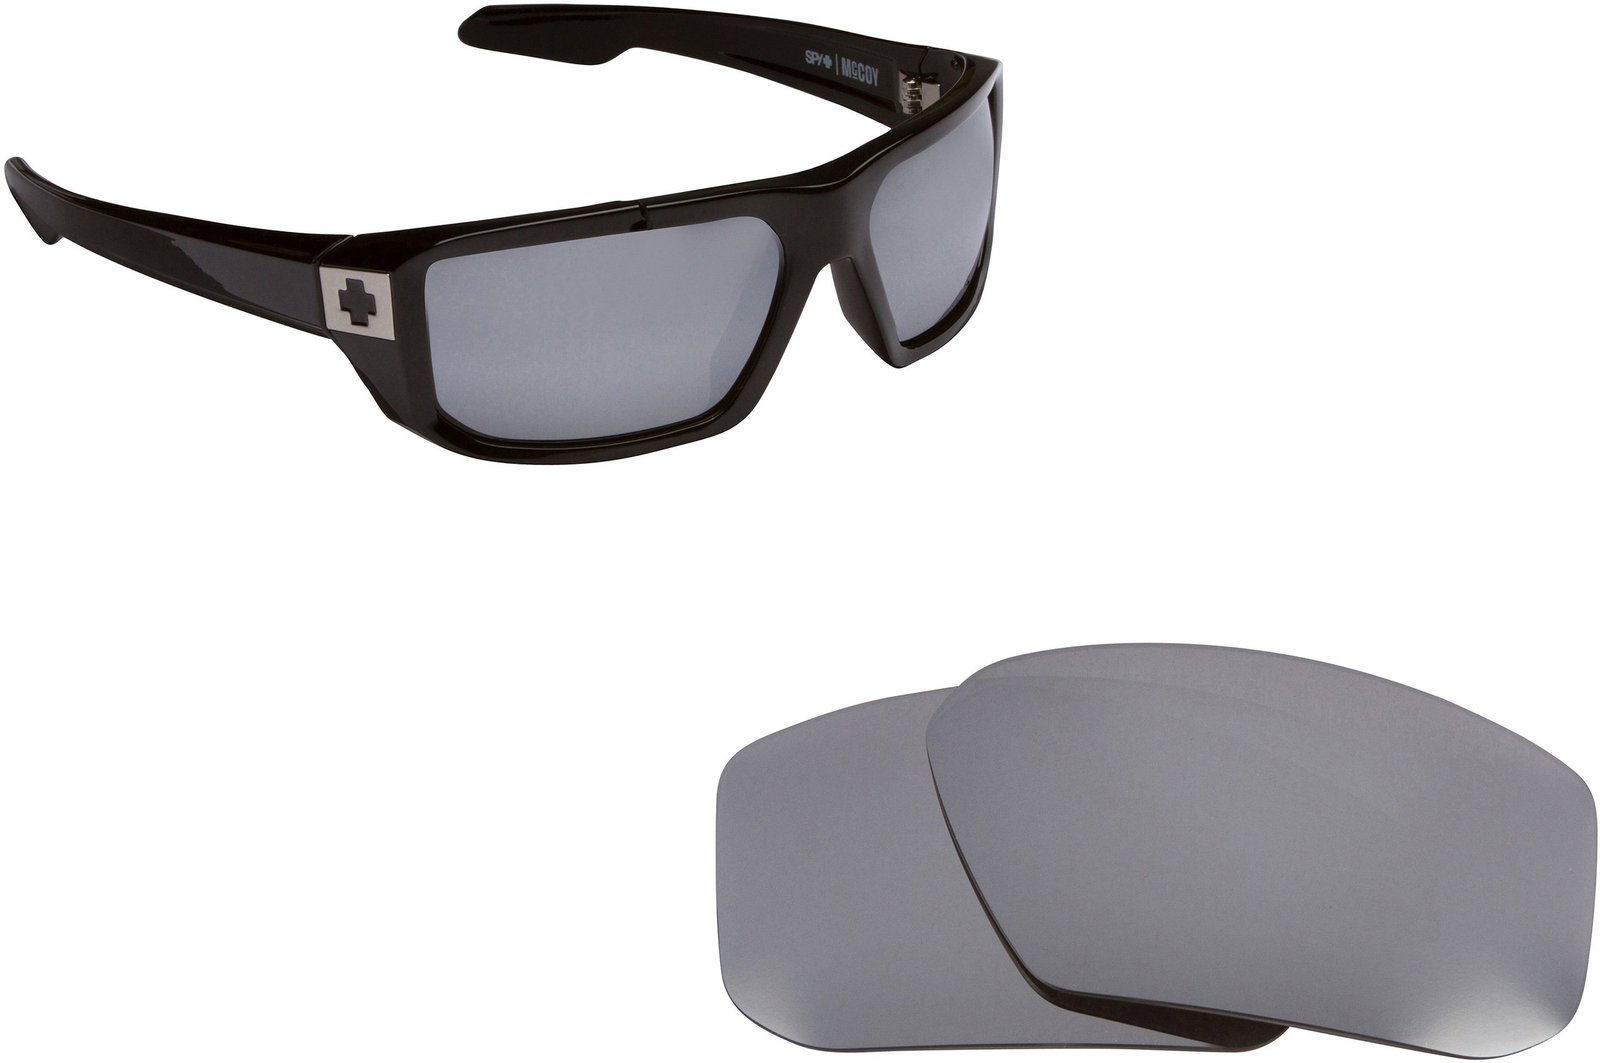 b73e82e5456 71 zv3uosdl. 71 zv3uosdl. New SEEK Replacement Lenses Spy Optics McCOY -  Polarized Silver Mirror  New SEEK Replacement ...